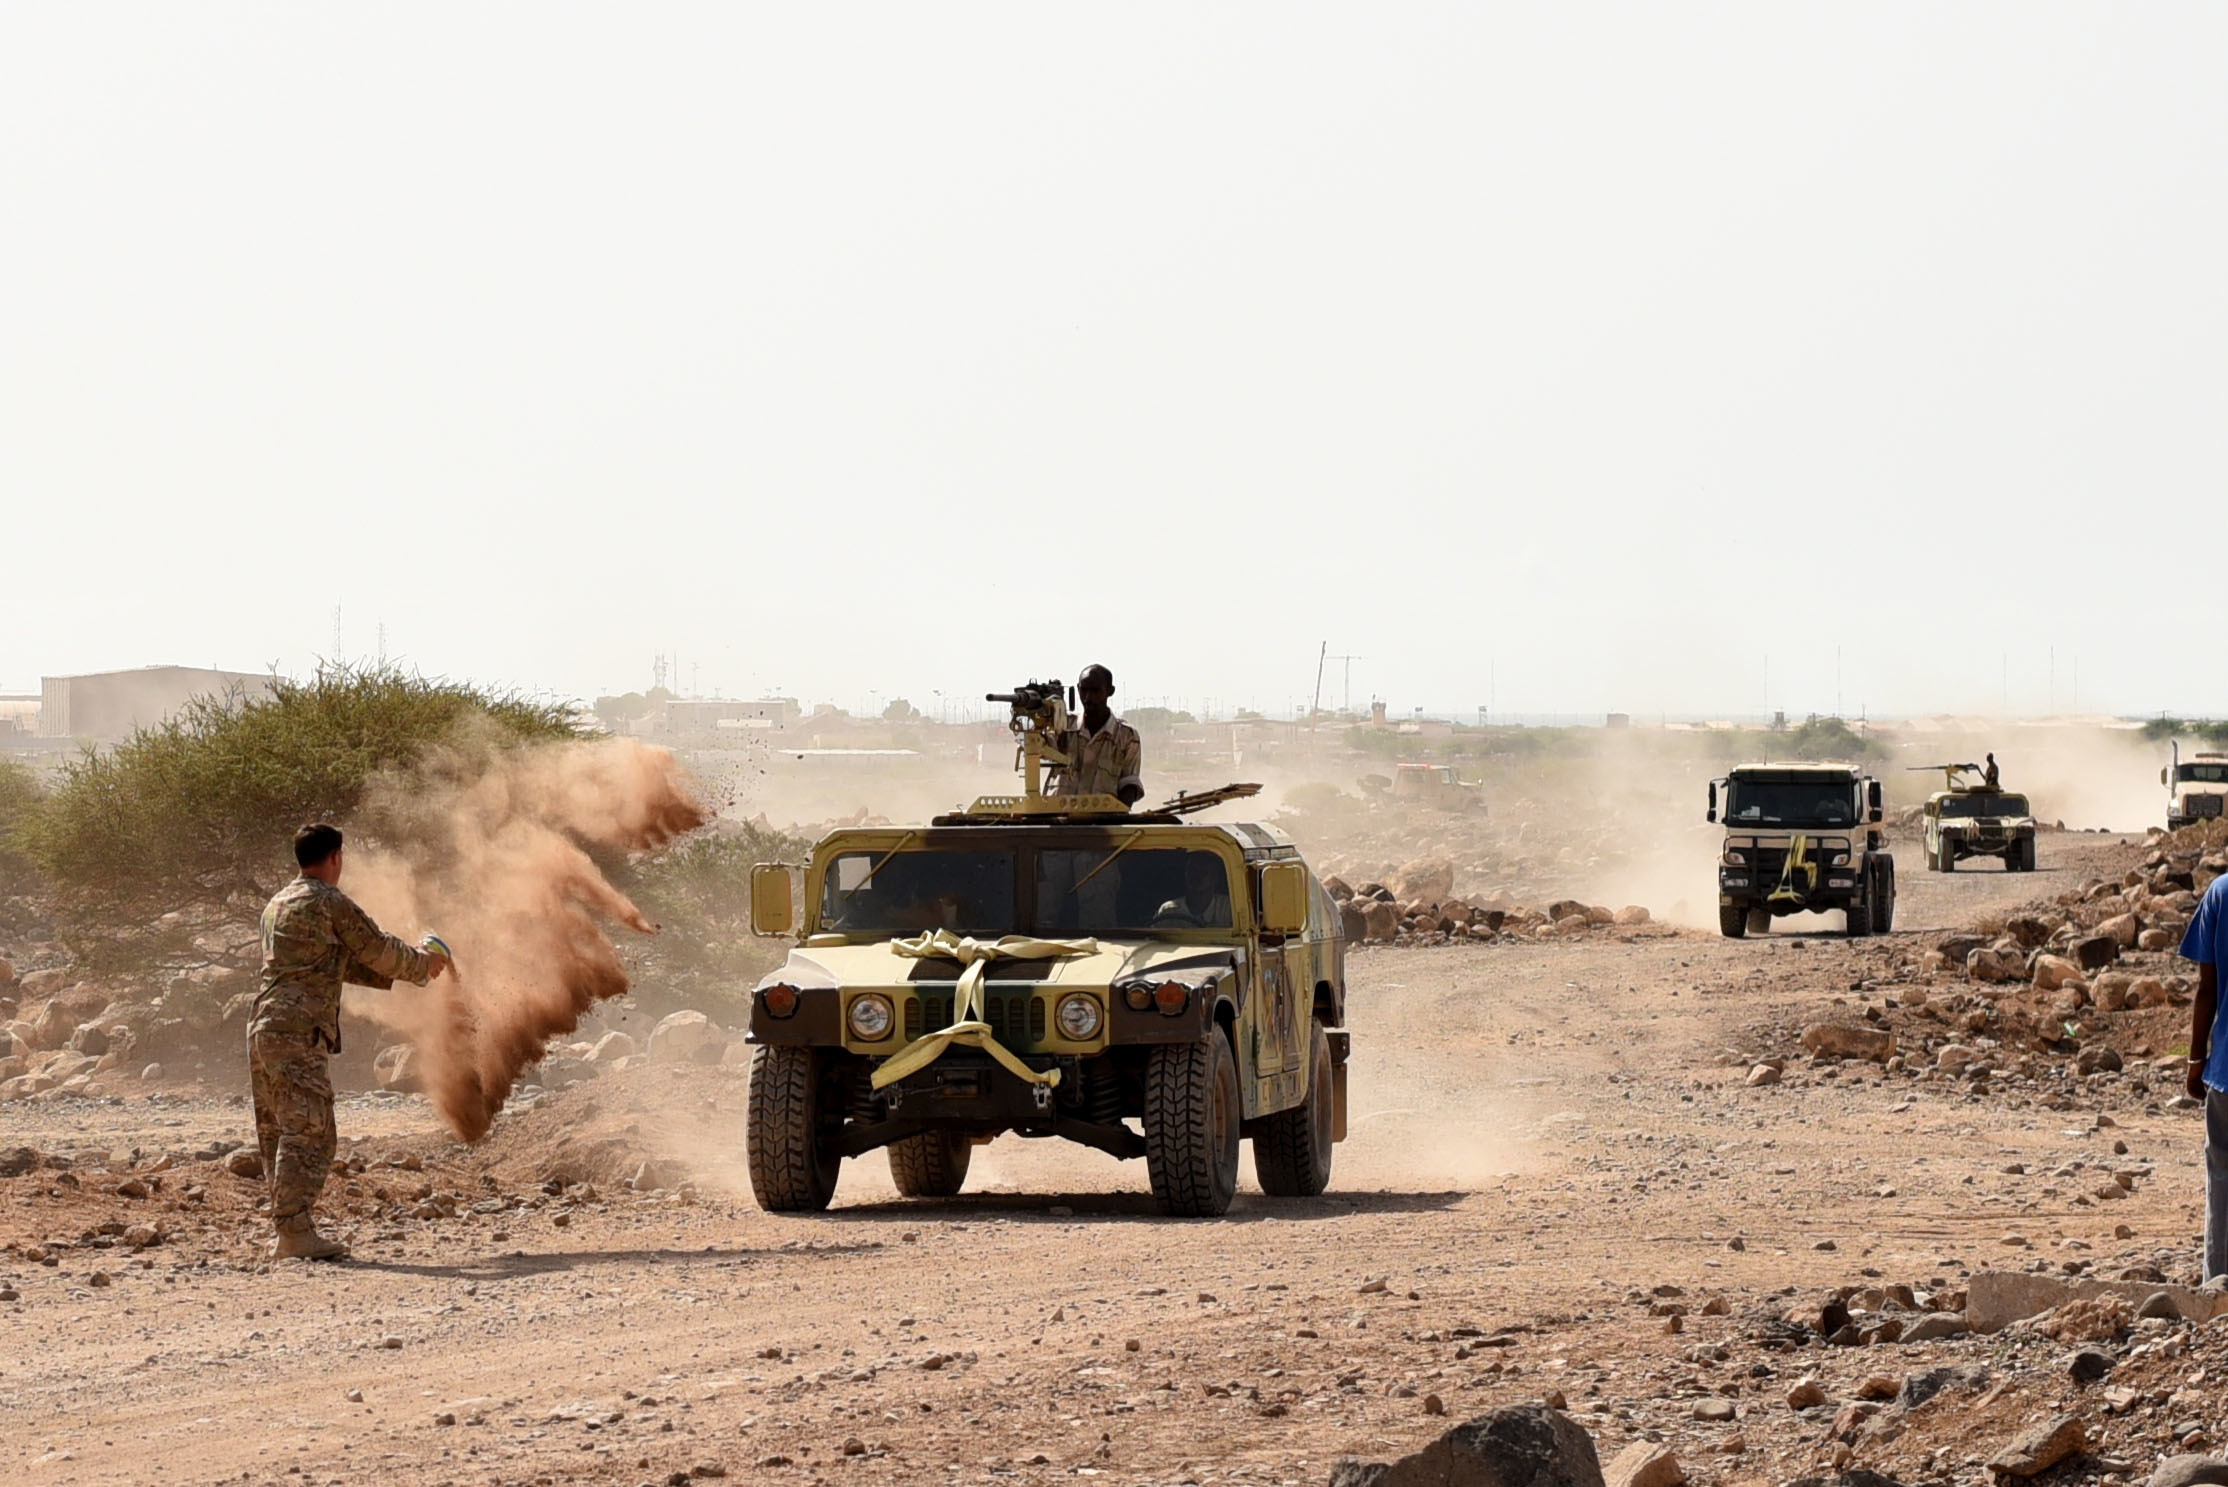 CAMP CHEIK OSMAN, Djibouti – U.S. Army Sgt. Robert Shelton, U.S. Army Regionally Aligned Forces instructor, throws dirt at a Humvee to simulate a roadside detonation causing immobility during Area Logistics Training final with Djiboutian Armed Forces (FAD) soldiers, May 16, 2016, at Camp Cheik Osman, Djibouti. The FAD soldiers tested combat skills they learned throughout the five month course demonstrating their reactions to various mock situations from convoying through a road block, identifying mock roadside bombs, medical care, and vehicle recovery. (U.S. Air Force photo by Staff Sgt. Tiffany DeNault/Released)